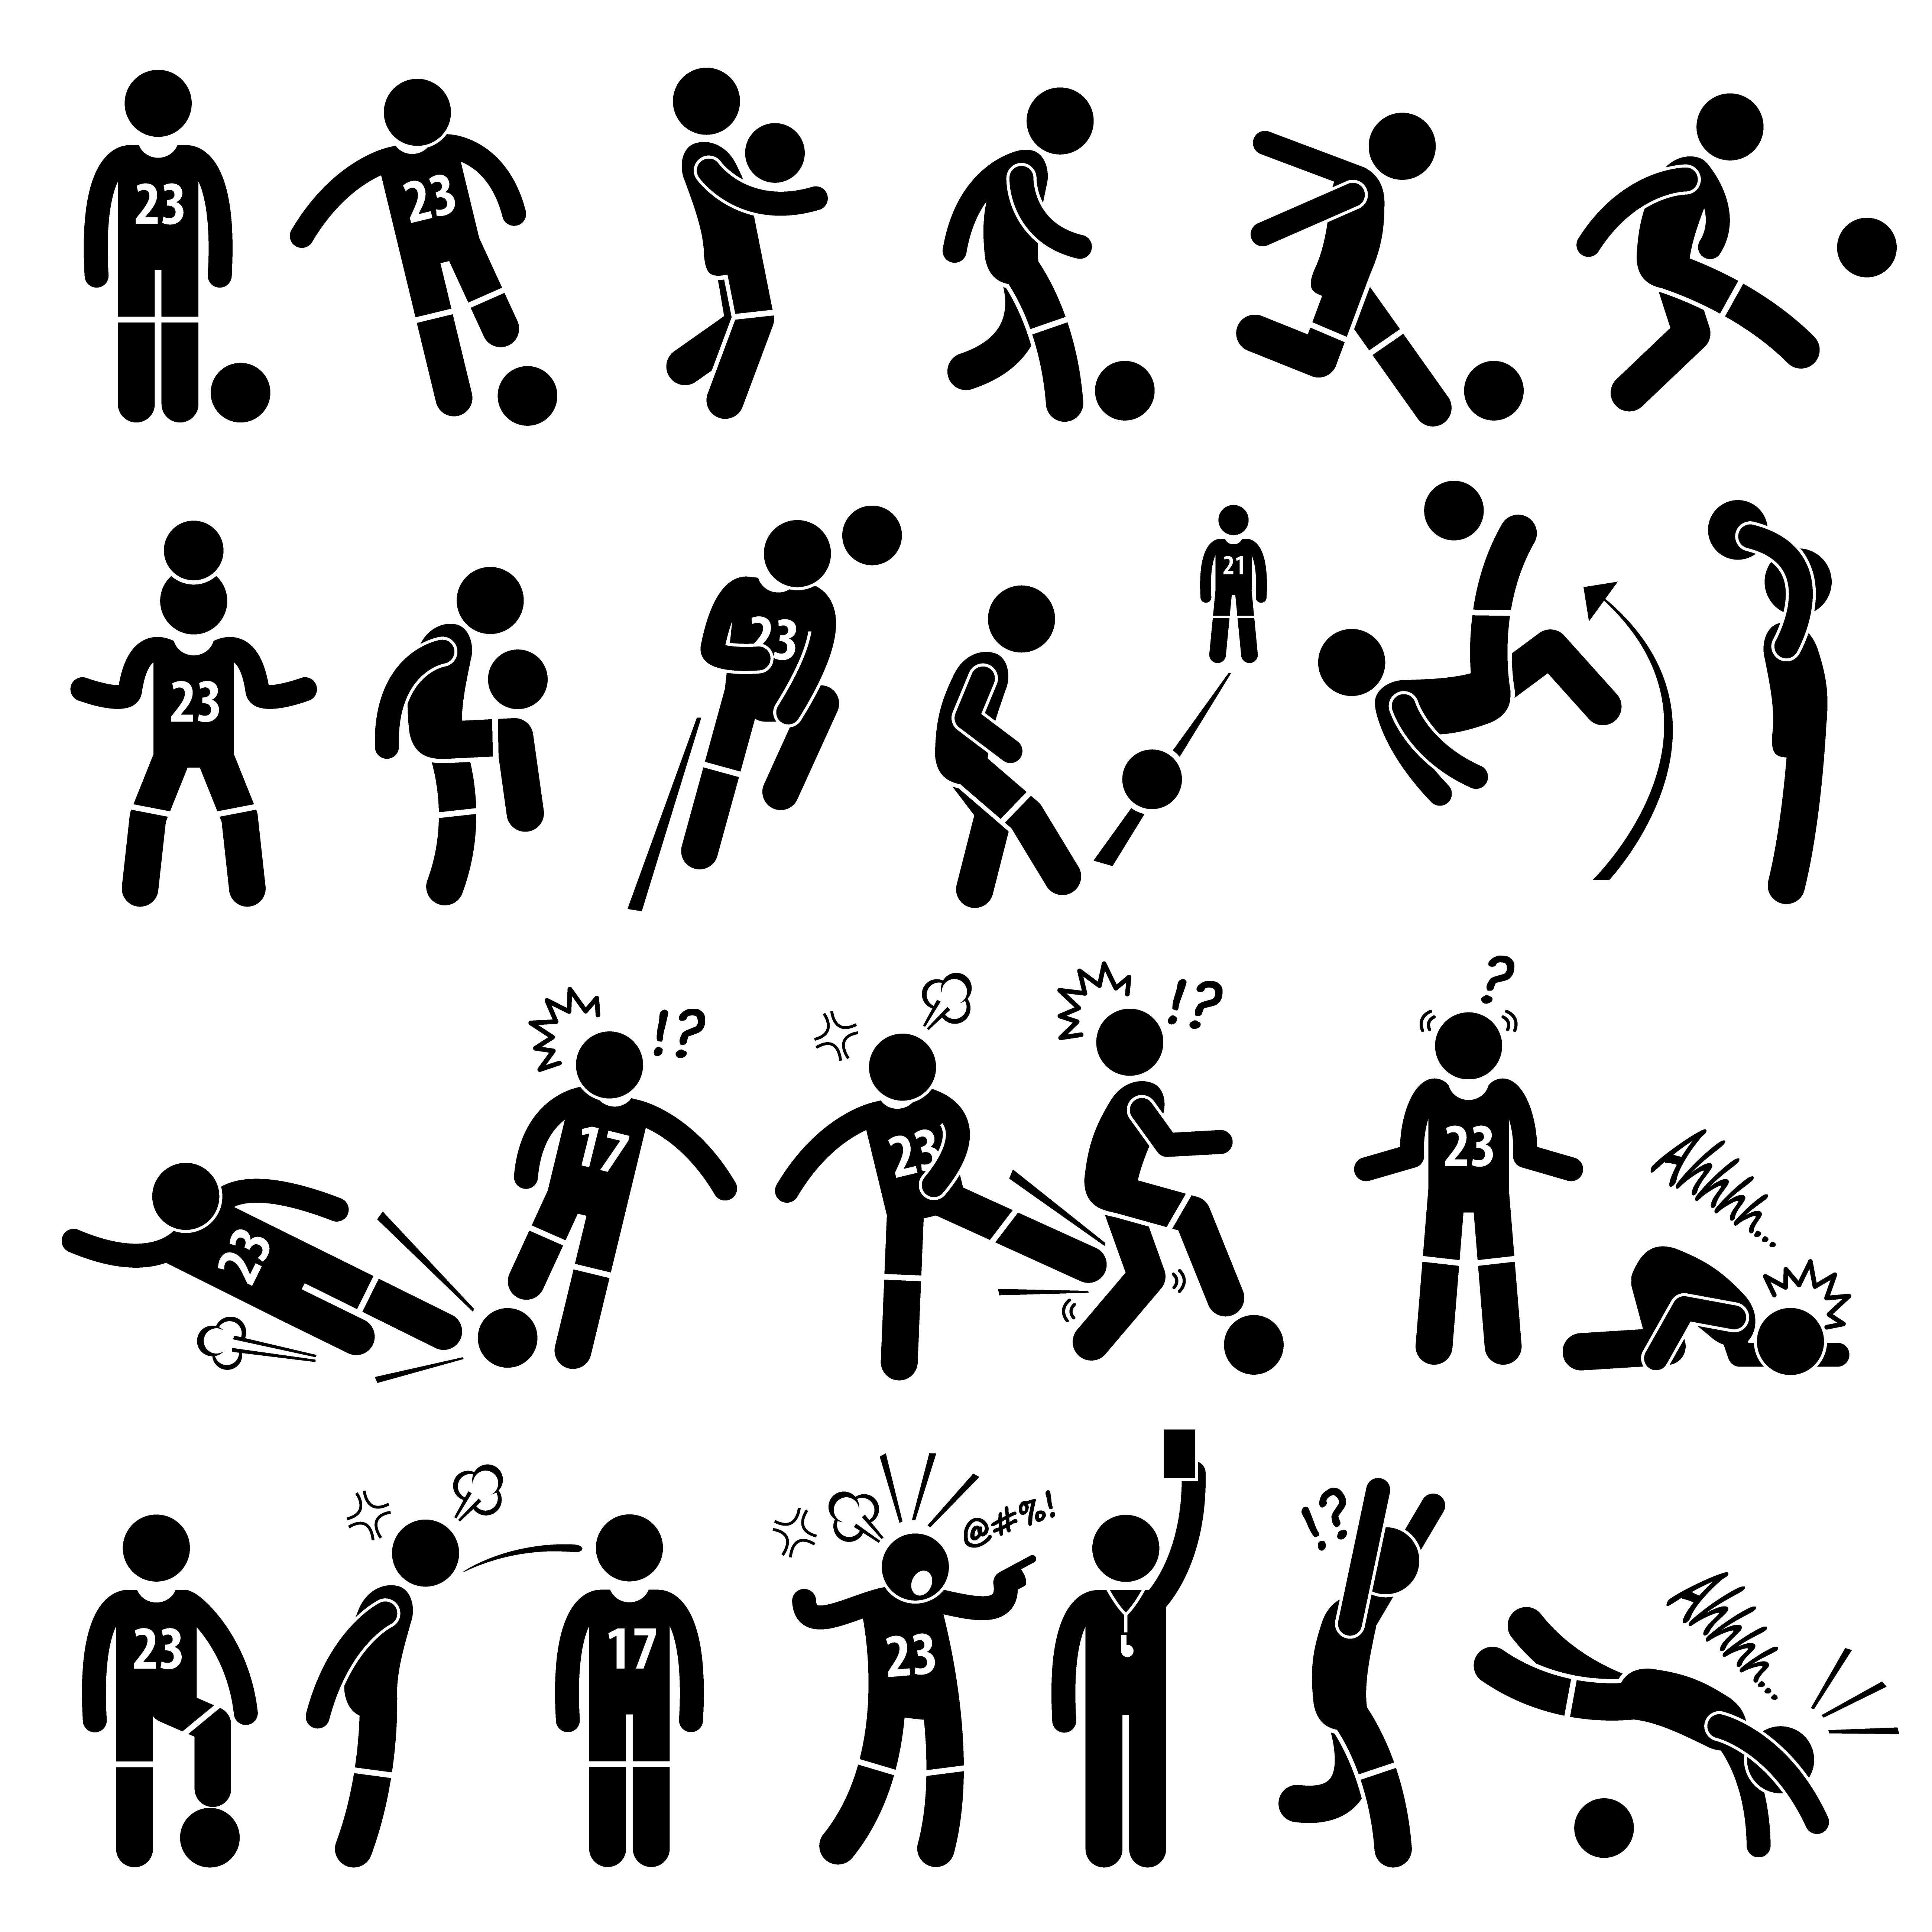 Football Soccer Player Footballer Actions Poses Stick